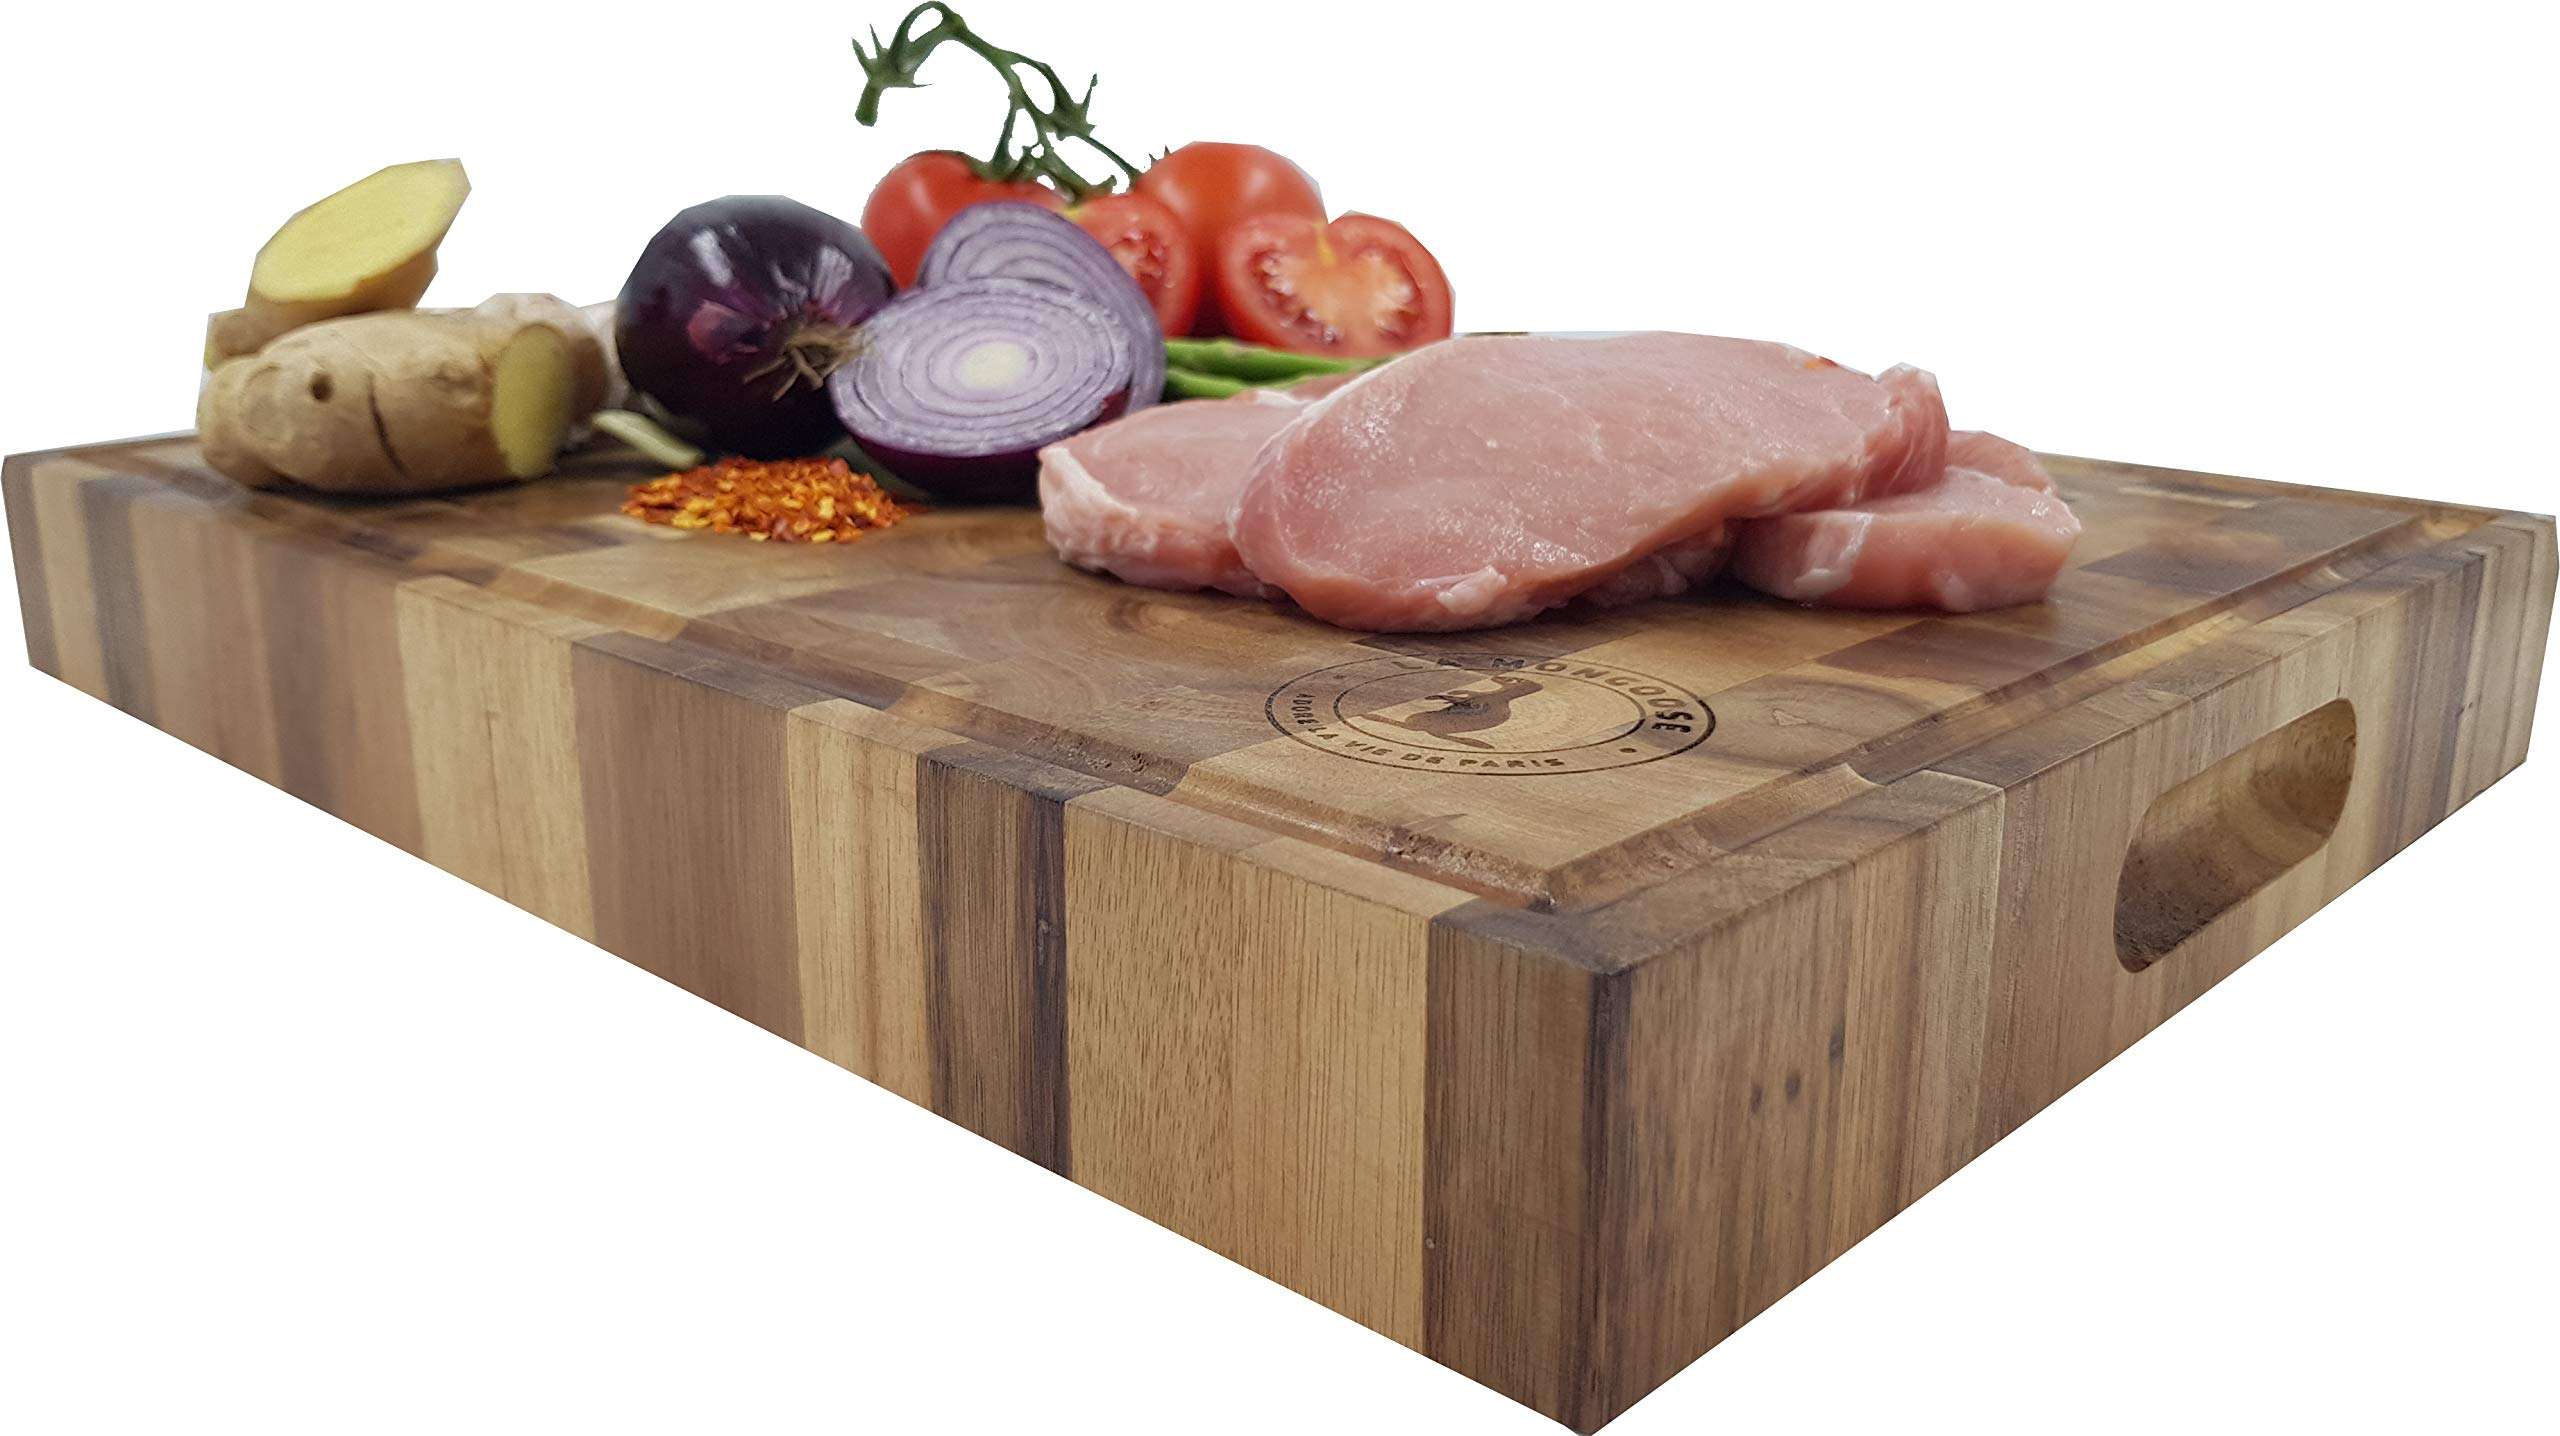 Extra Large Thick Acacia Wood Cutting Board 17 x 13 x 2 inches by La Mongoose. Juice Groove and Hand Grips Reversible Anti Microbial Solid Sturdy End Grain Butchers Block Chopping Serving Tray Platter by La Mongoose (Image #9)